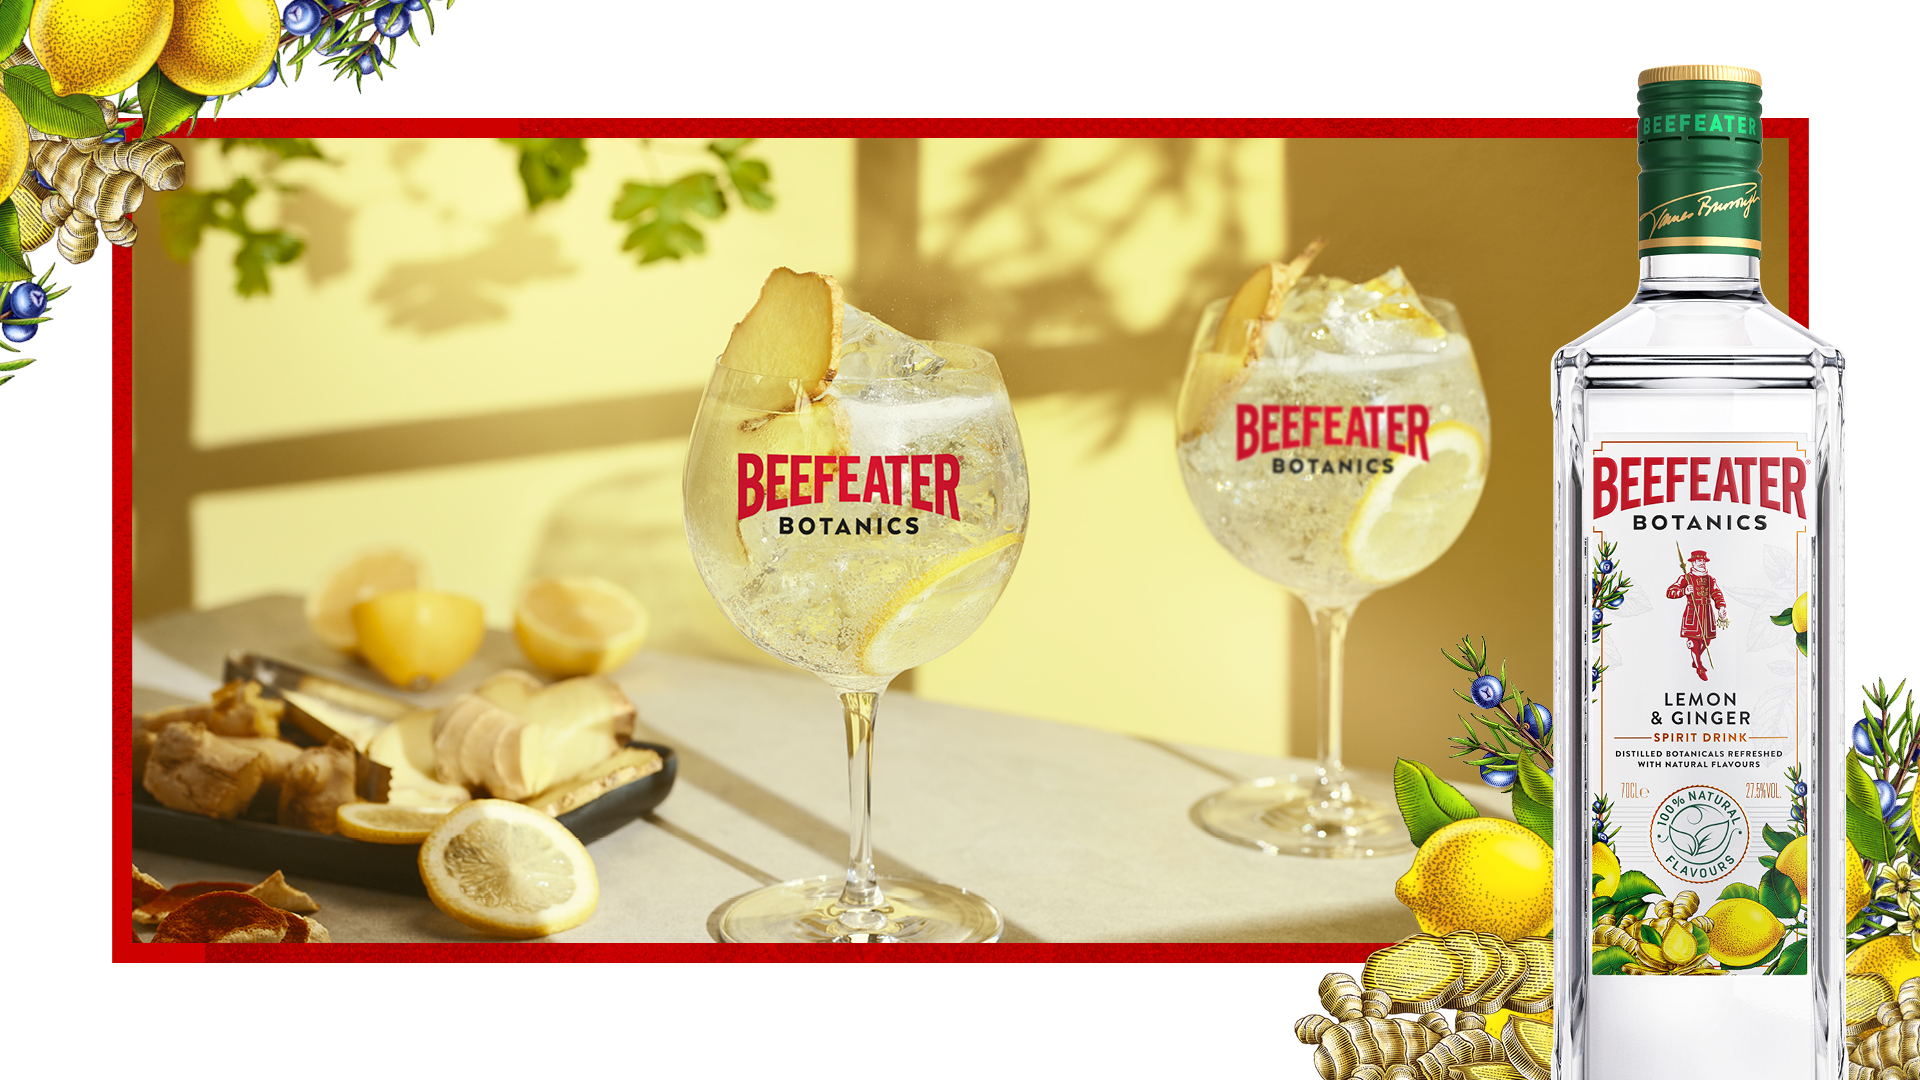 Beefeater Botanics Lemon & Ginger